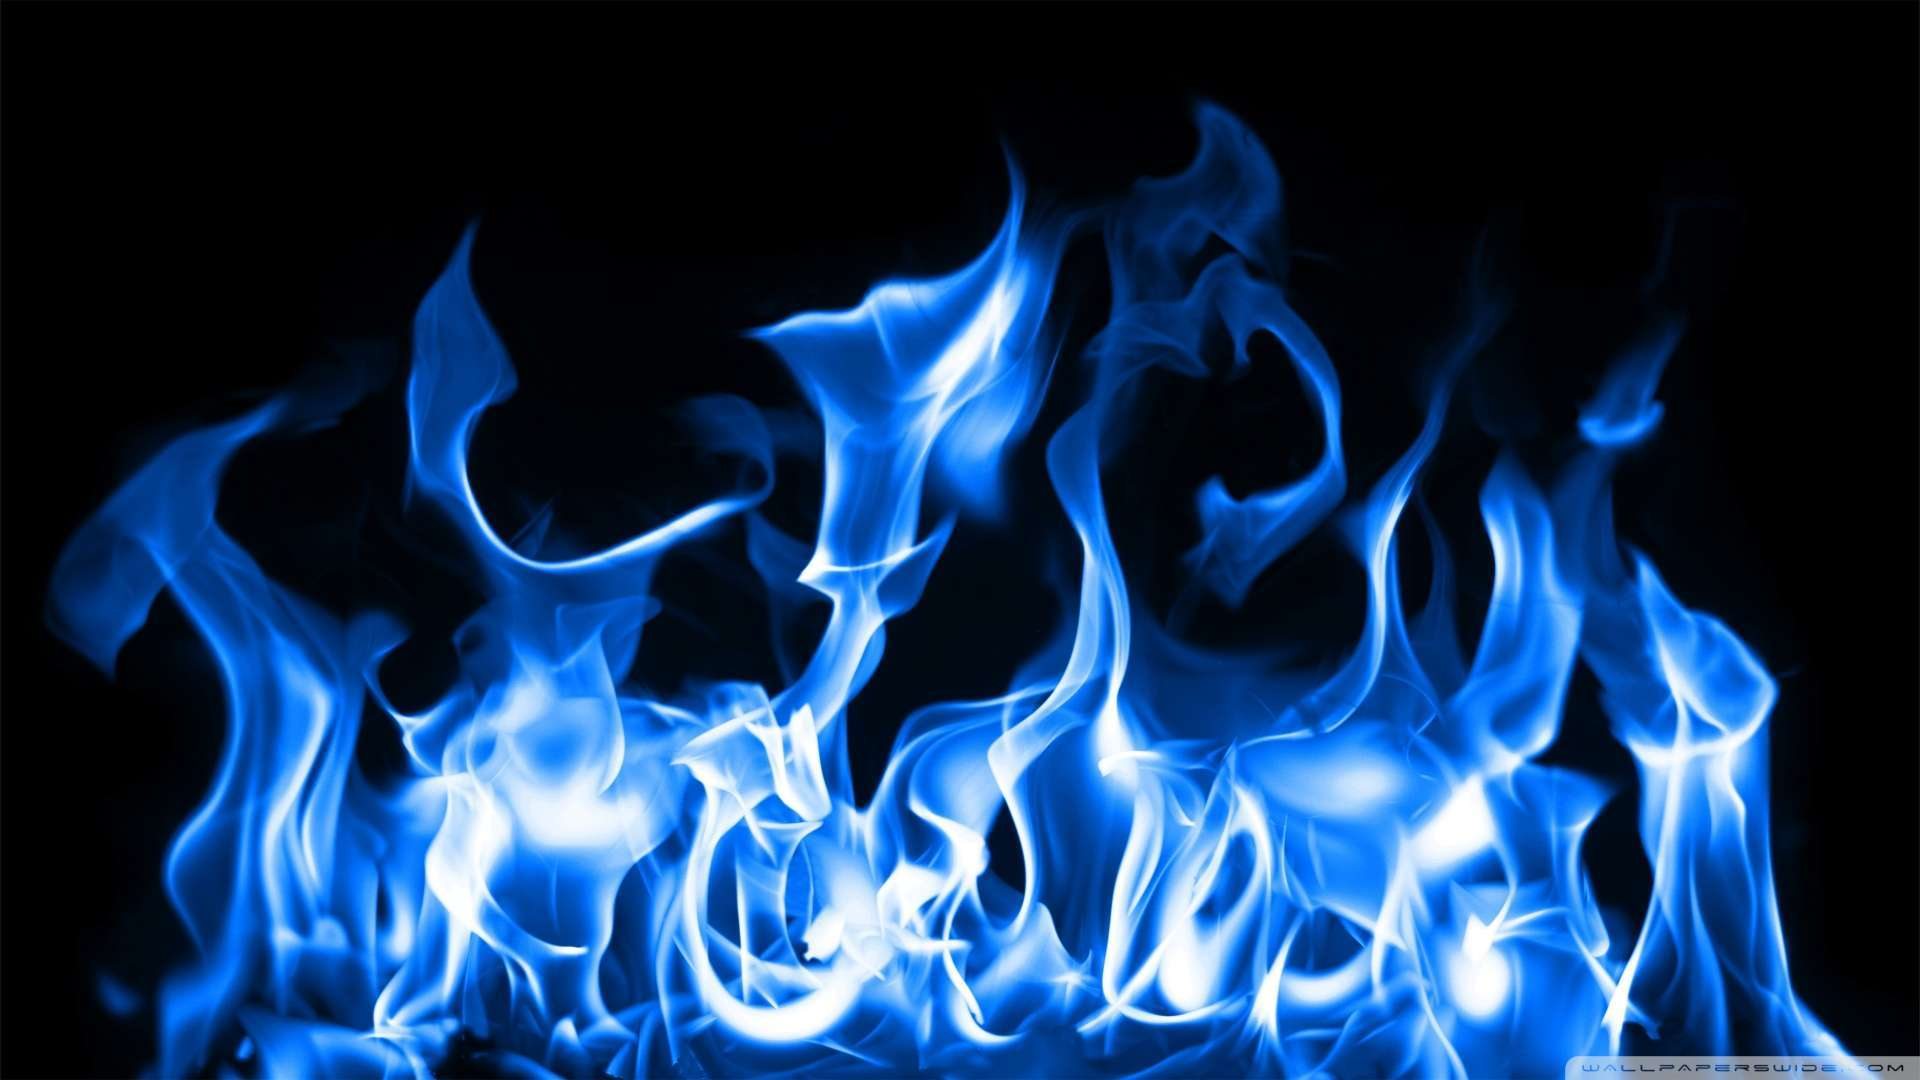 Wallpaper Blue Fire Wallpaper 1080p HD Upload at January 7 2014 by 1920x1080